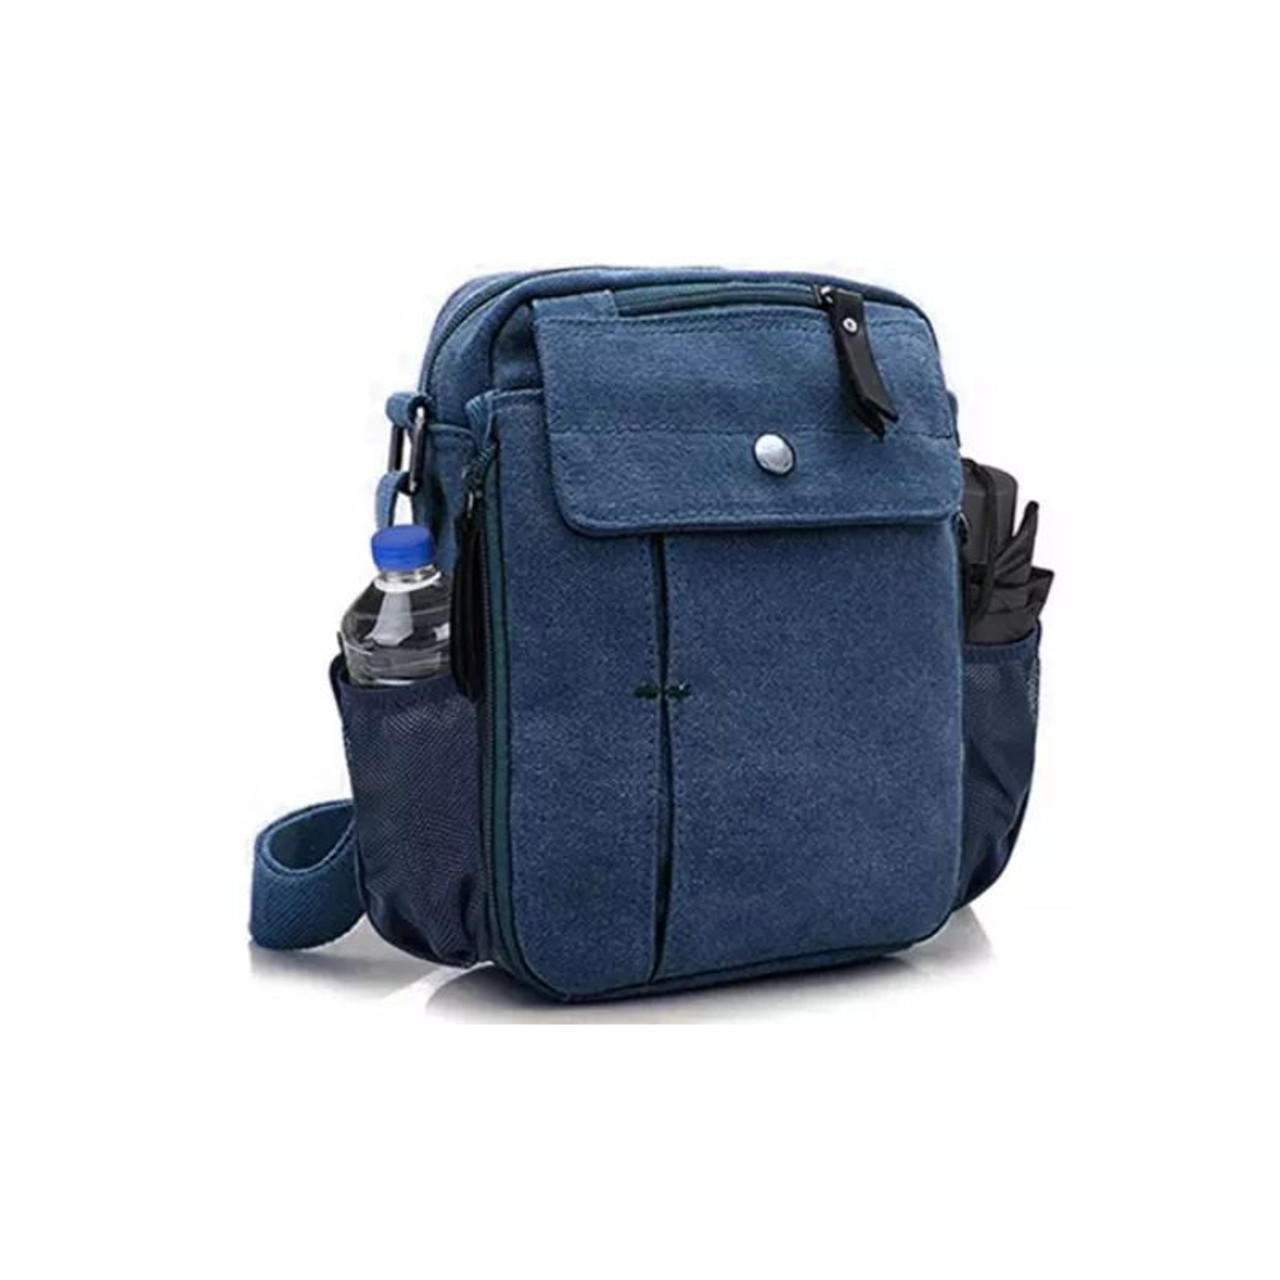 Multi-Functional Canvas Purse Bag with Bottle Holder - 5 Colors